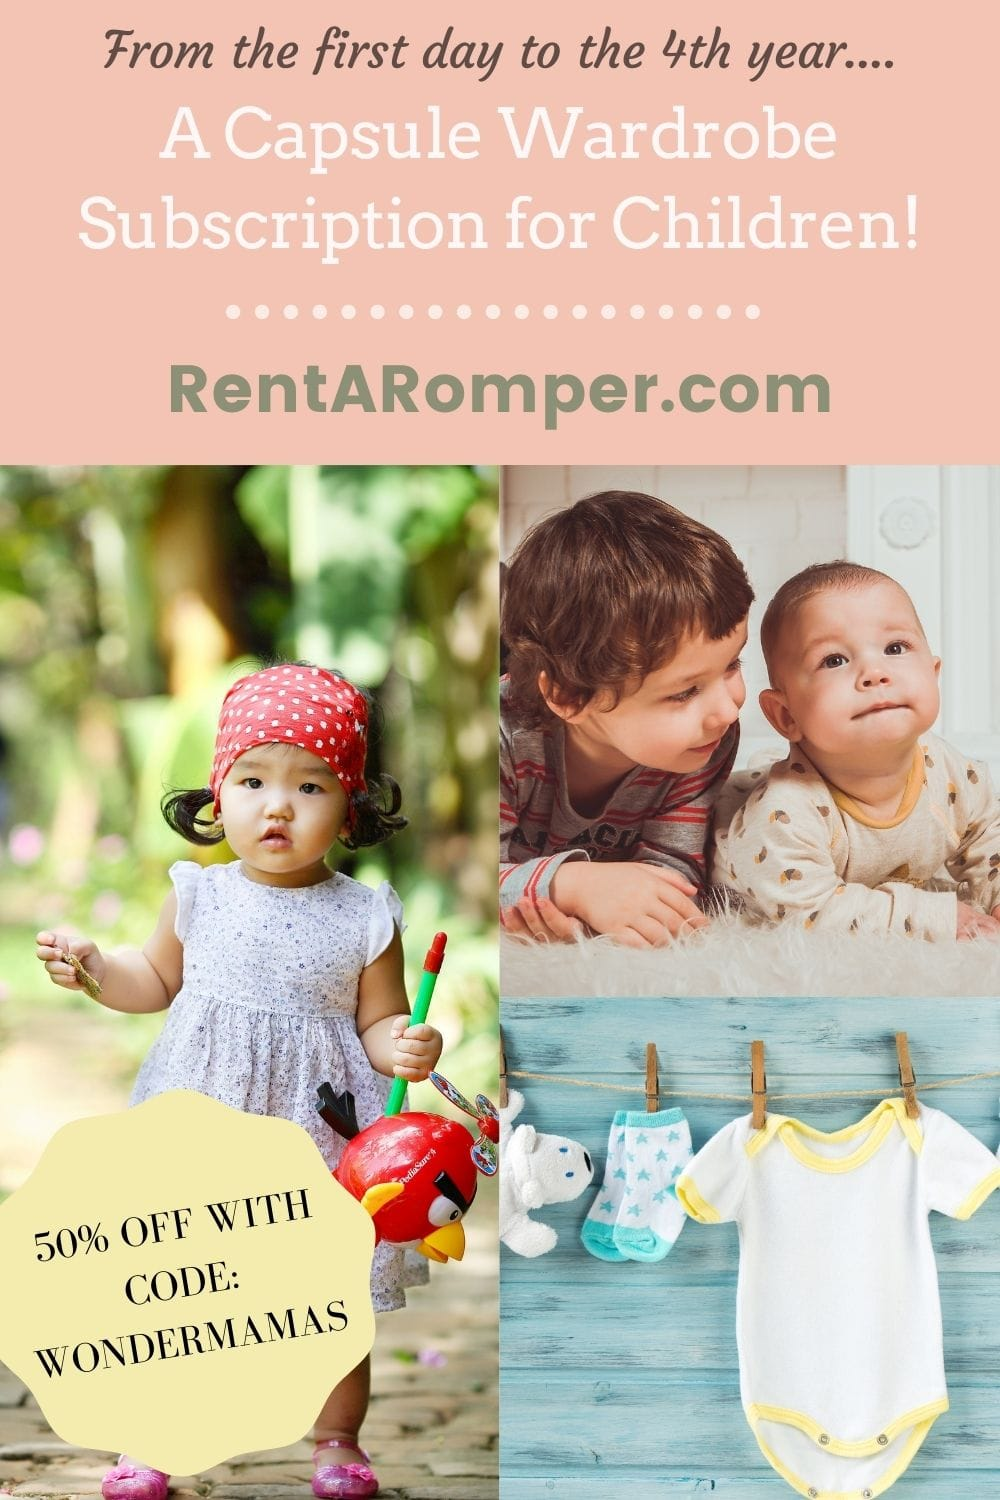 Rent-A-Romper Capsule Wardrobe Subscription for Children